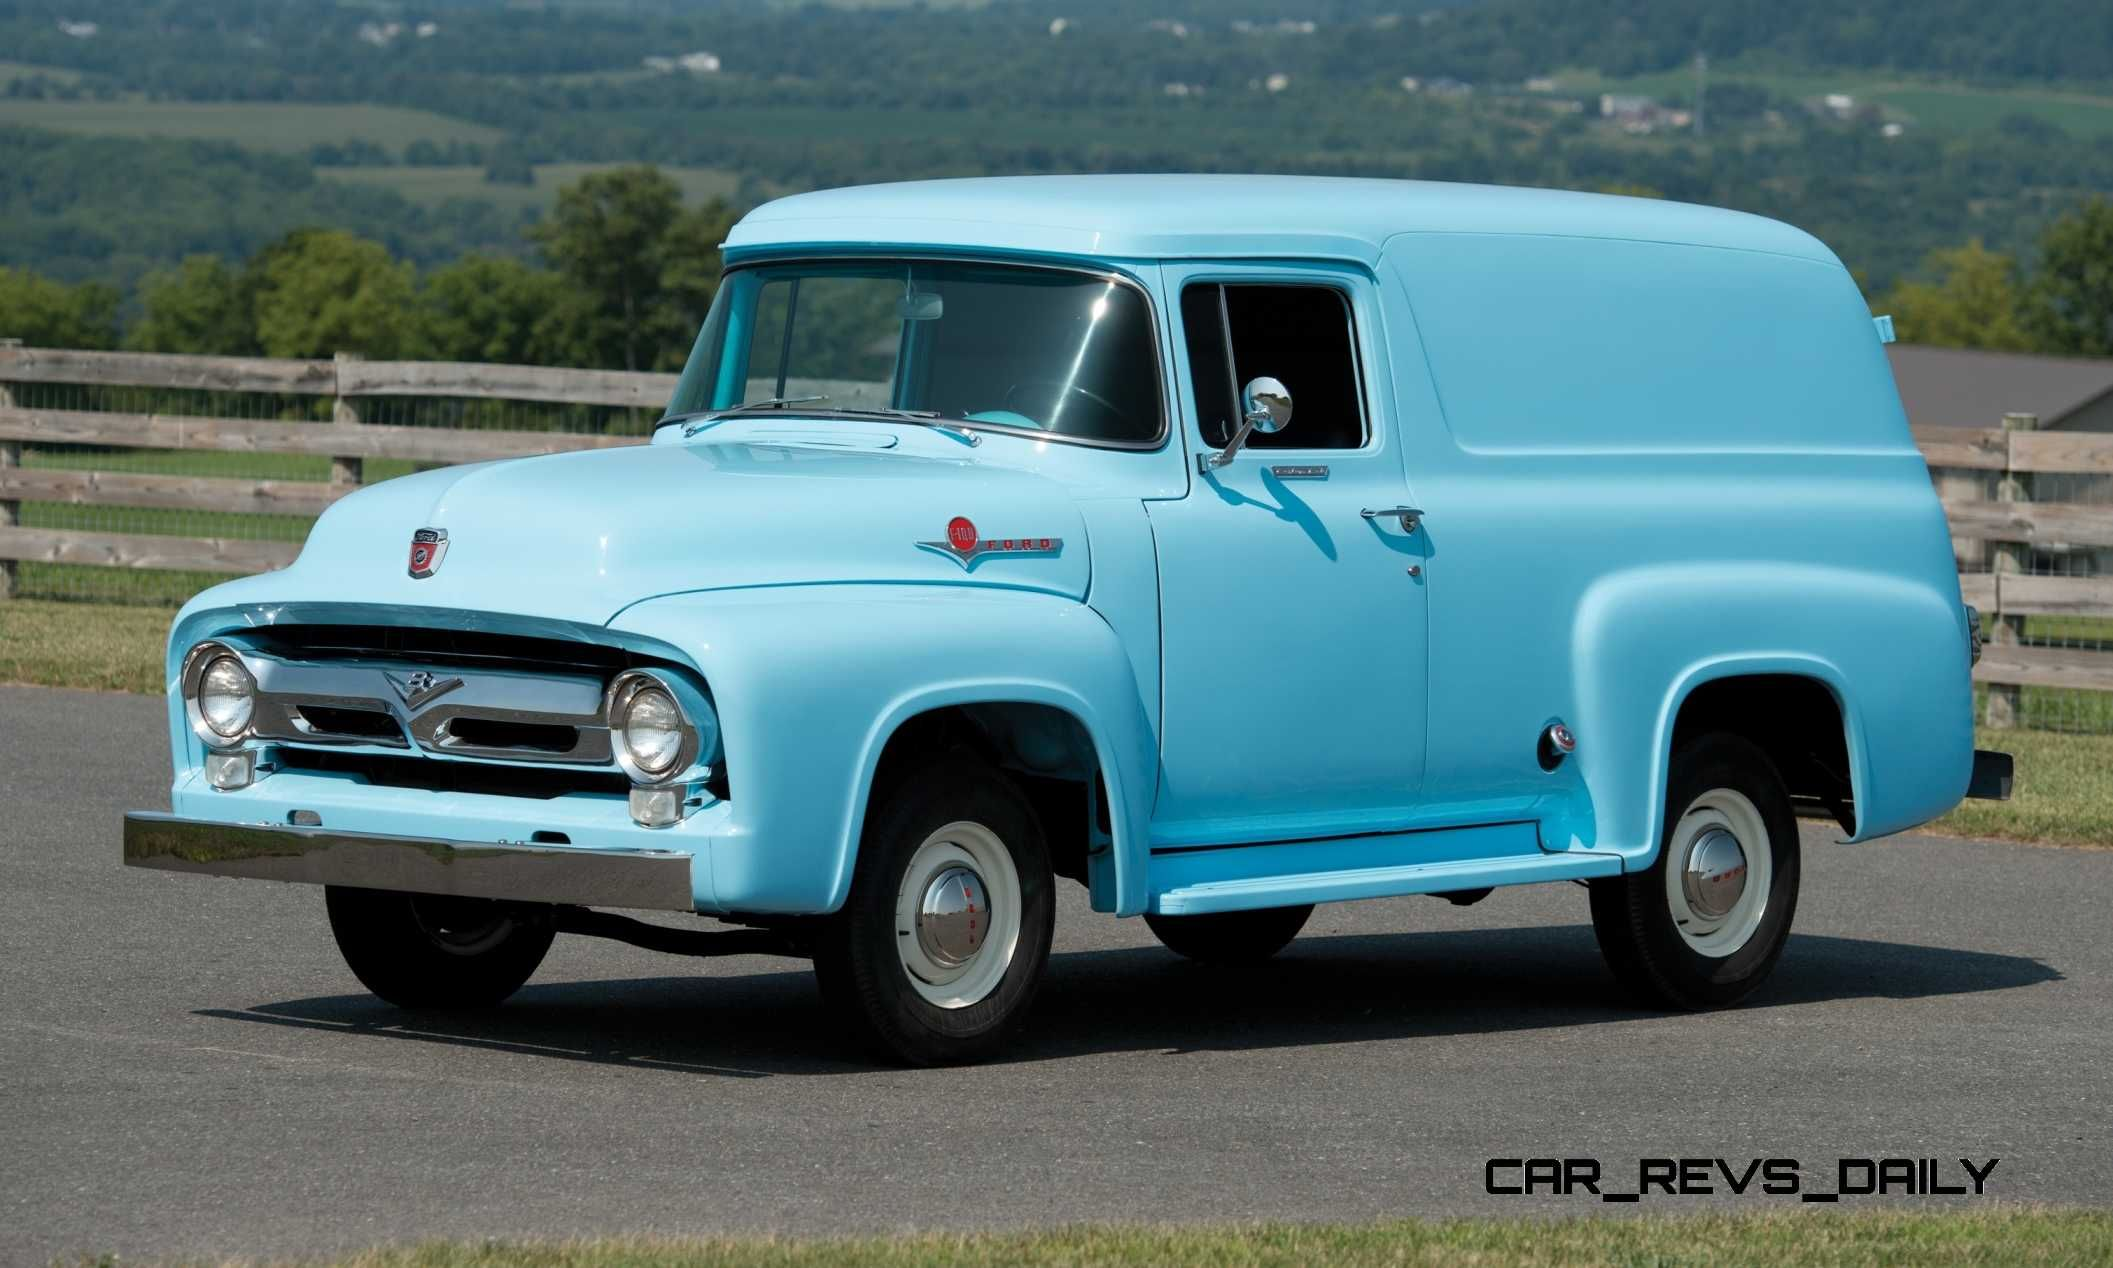 1956 ford concept car rm hershey 2014 highlights 1956 ford f 100 panel truck 1956